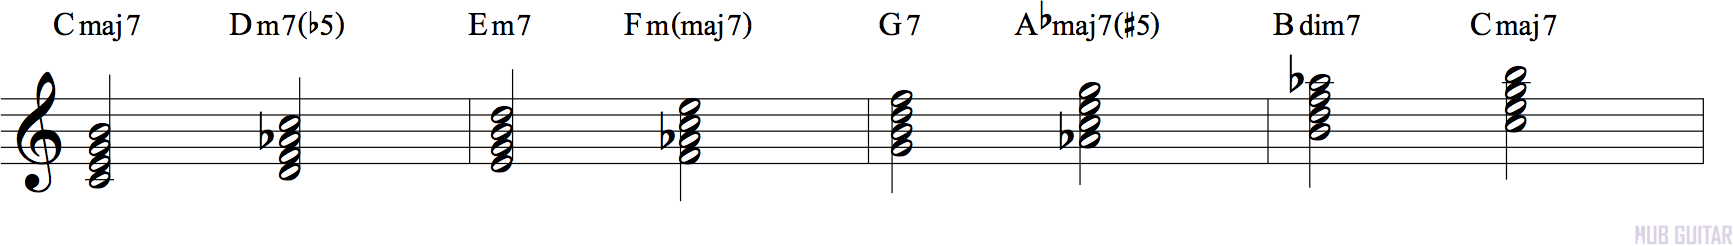 Chords that can be built using the harmonic major scale.